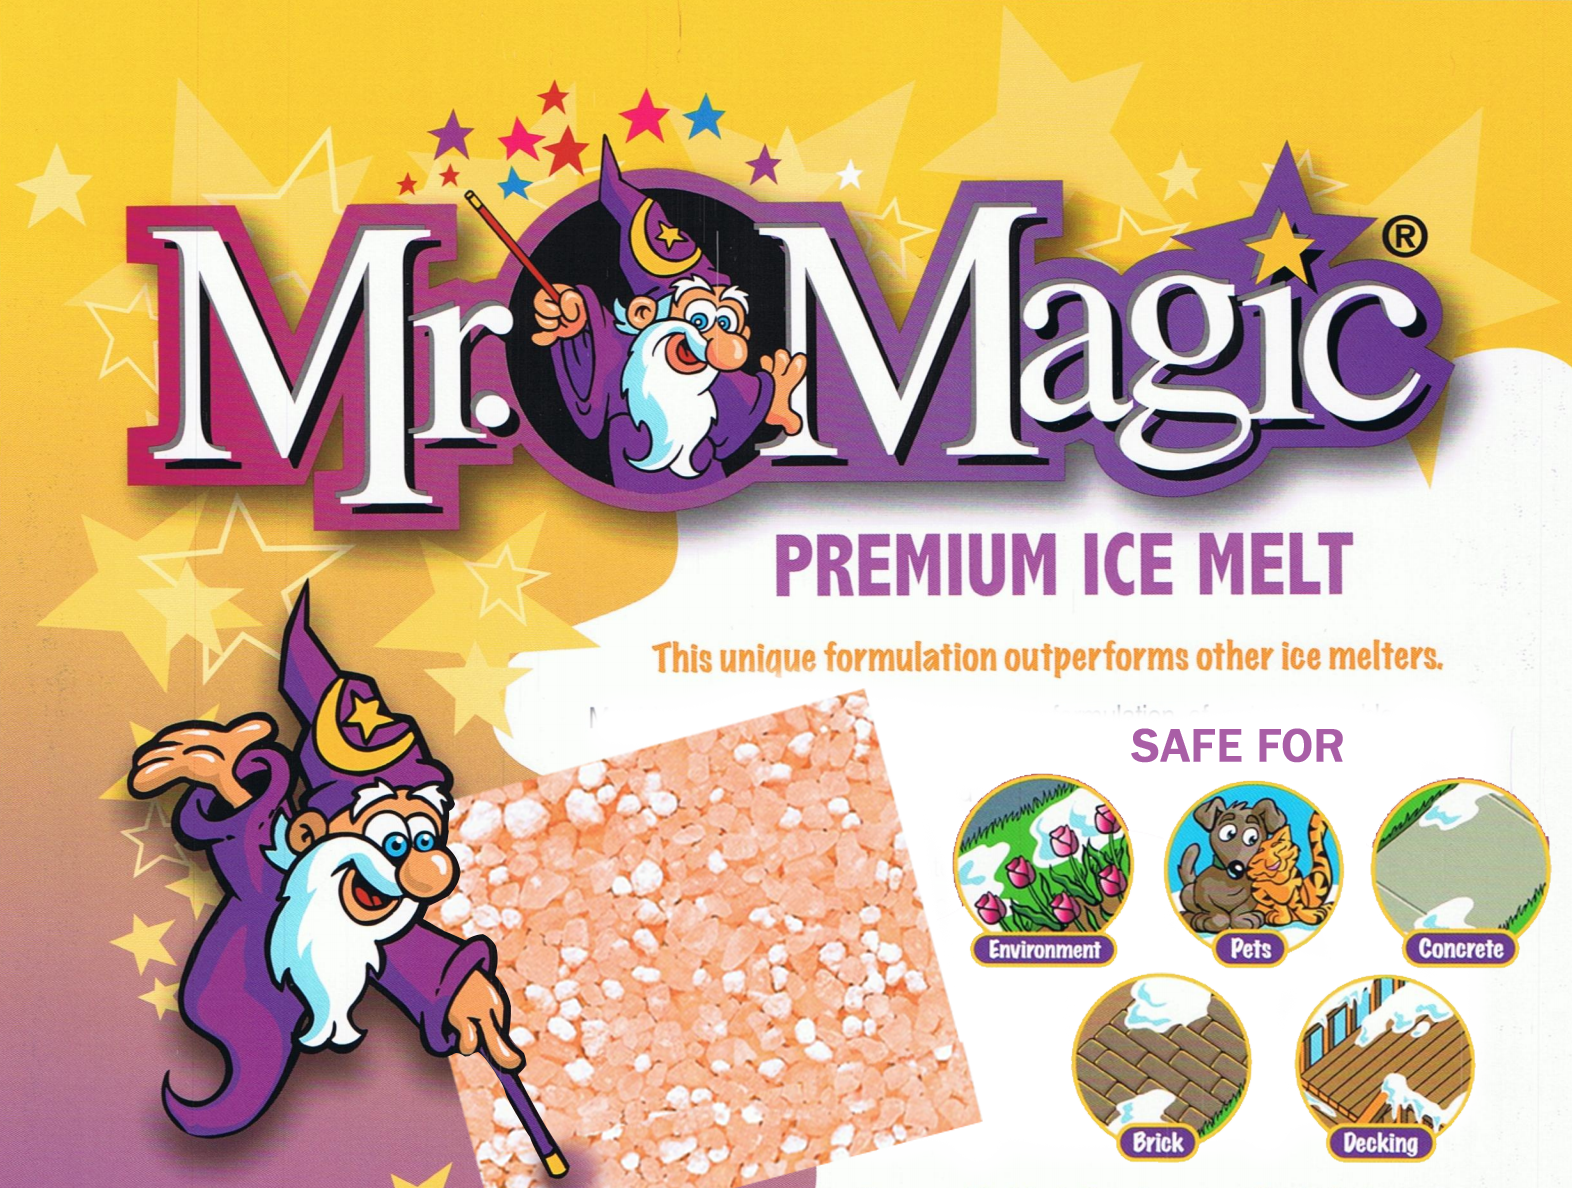 Mr.Magic Premium Ice Melt